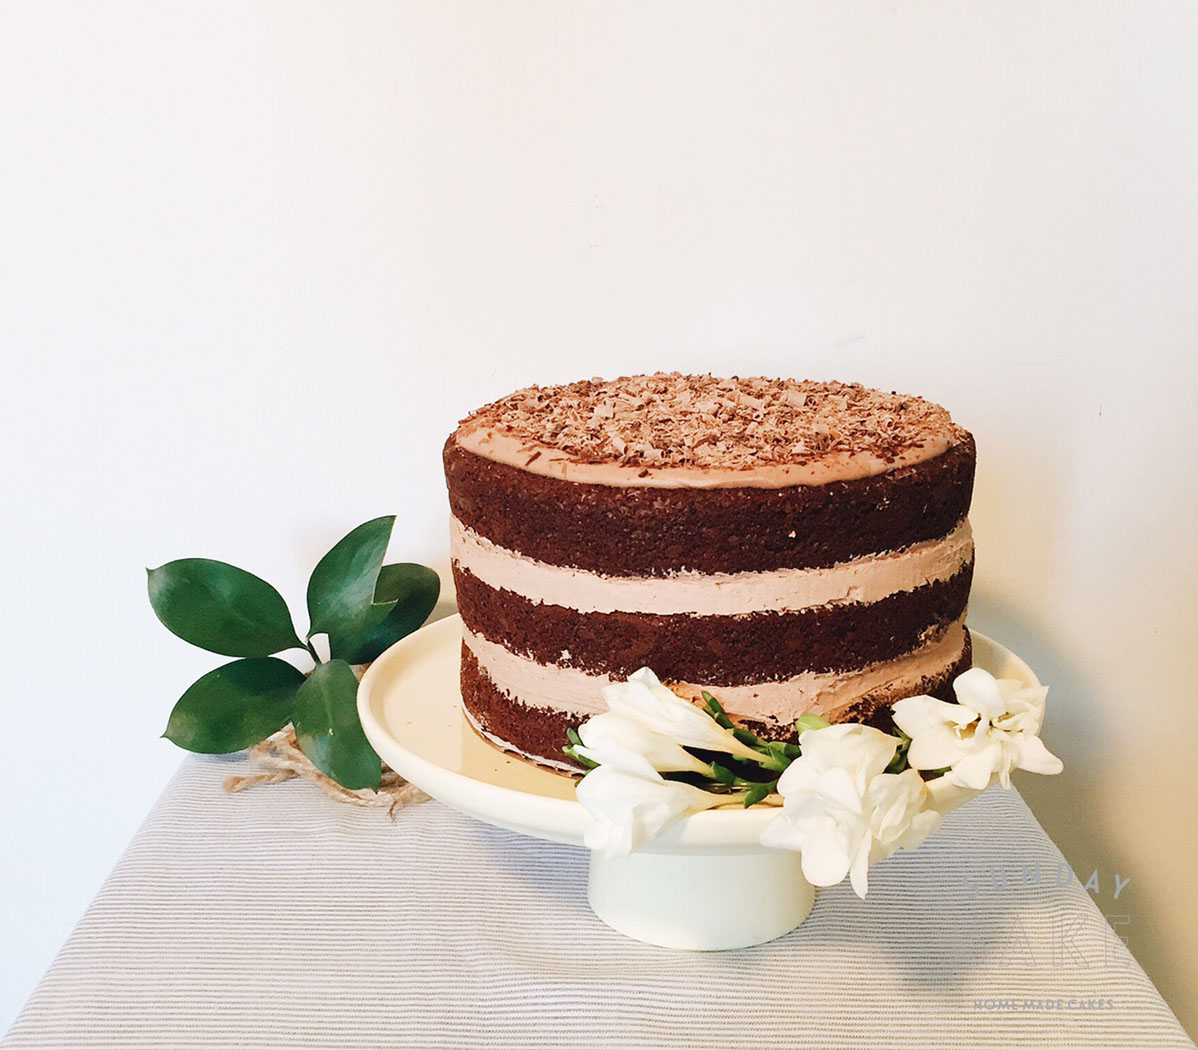 Moist chocolate cake with buttercream chocolate filling, topped with chocolate shavings